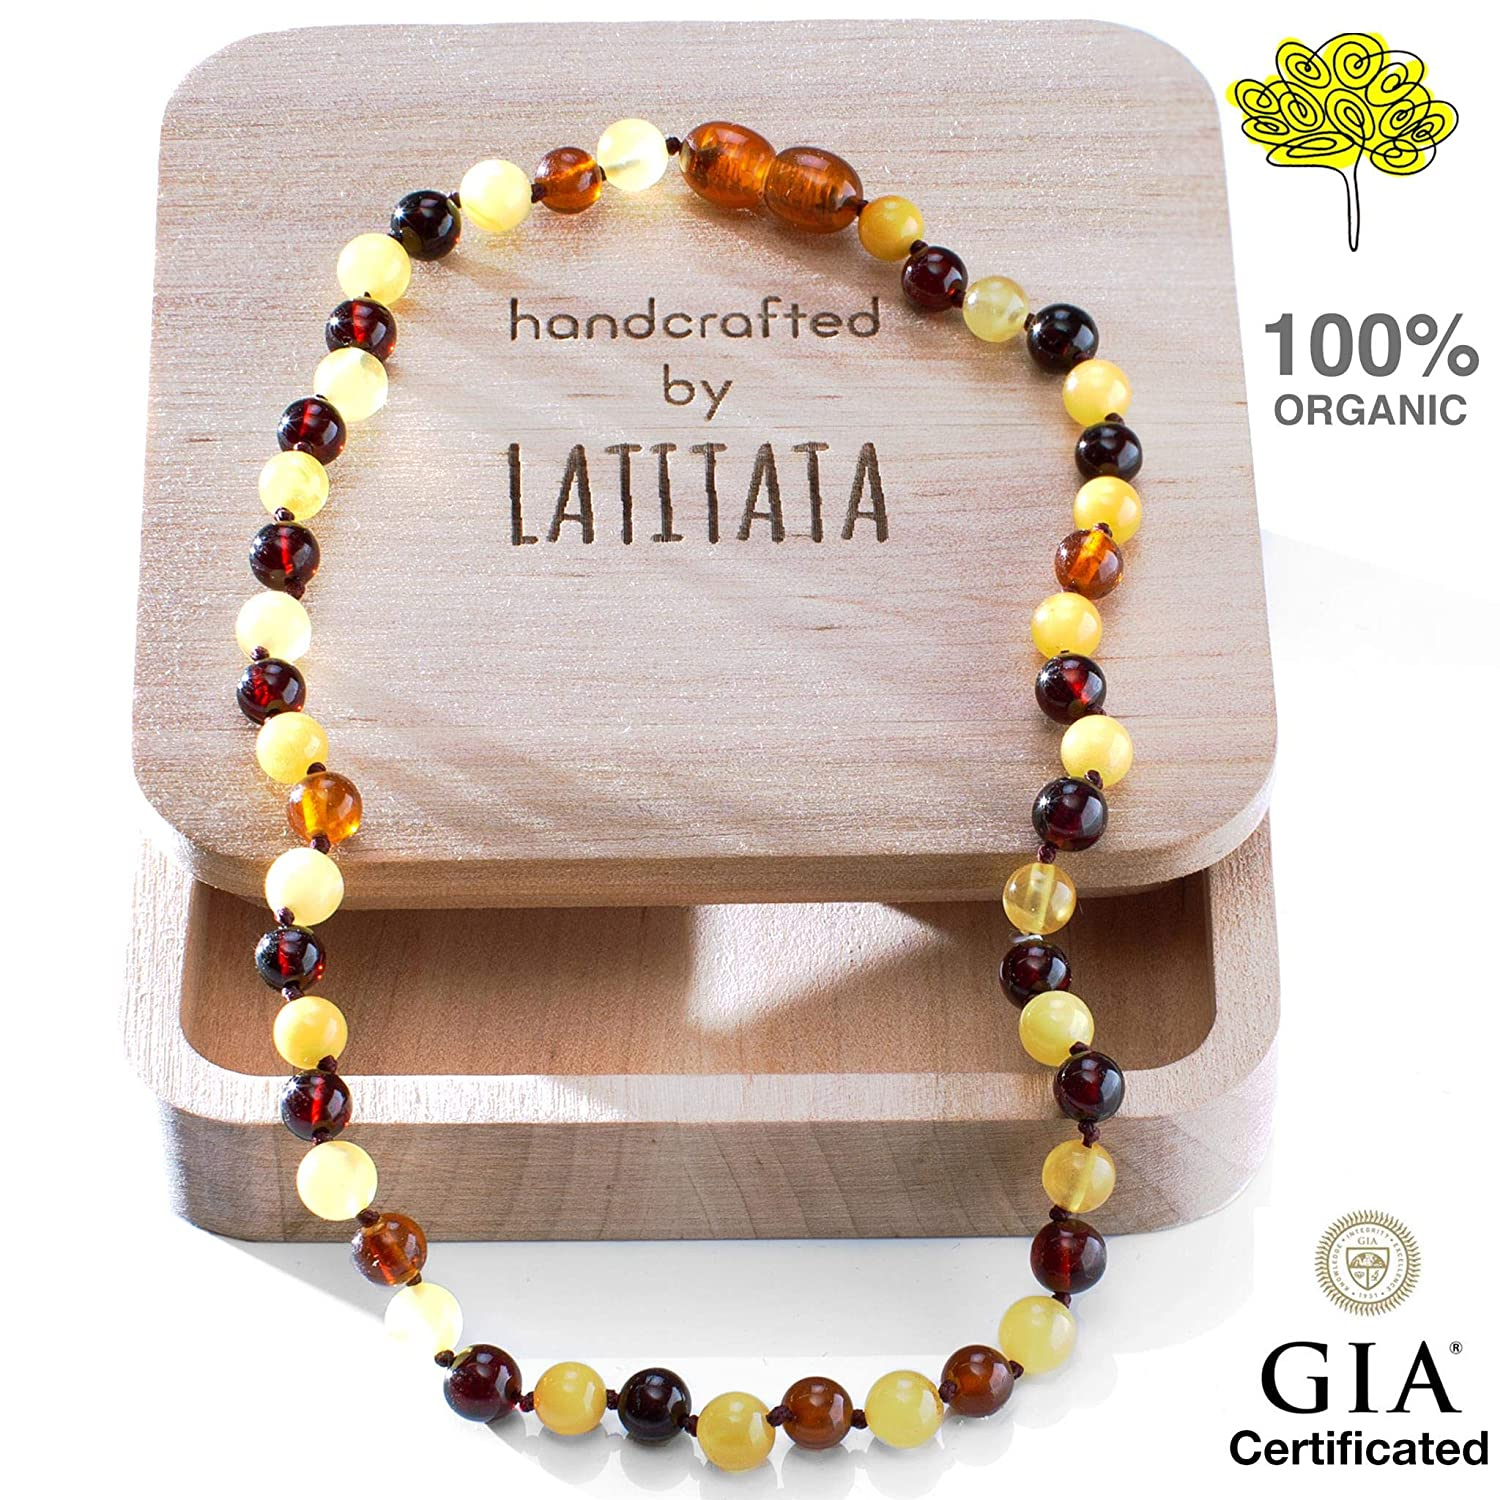 Amber Teething Necklace for Baby - Round Organic Raw Baltic Amber Beads - Anti Inflammatory Drooling & Teething Pain Relief - GIA Certificated Natural Jewelry for Boys and Girls - Handcrafted LATITATA CRAFT